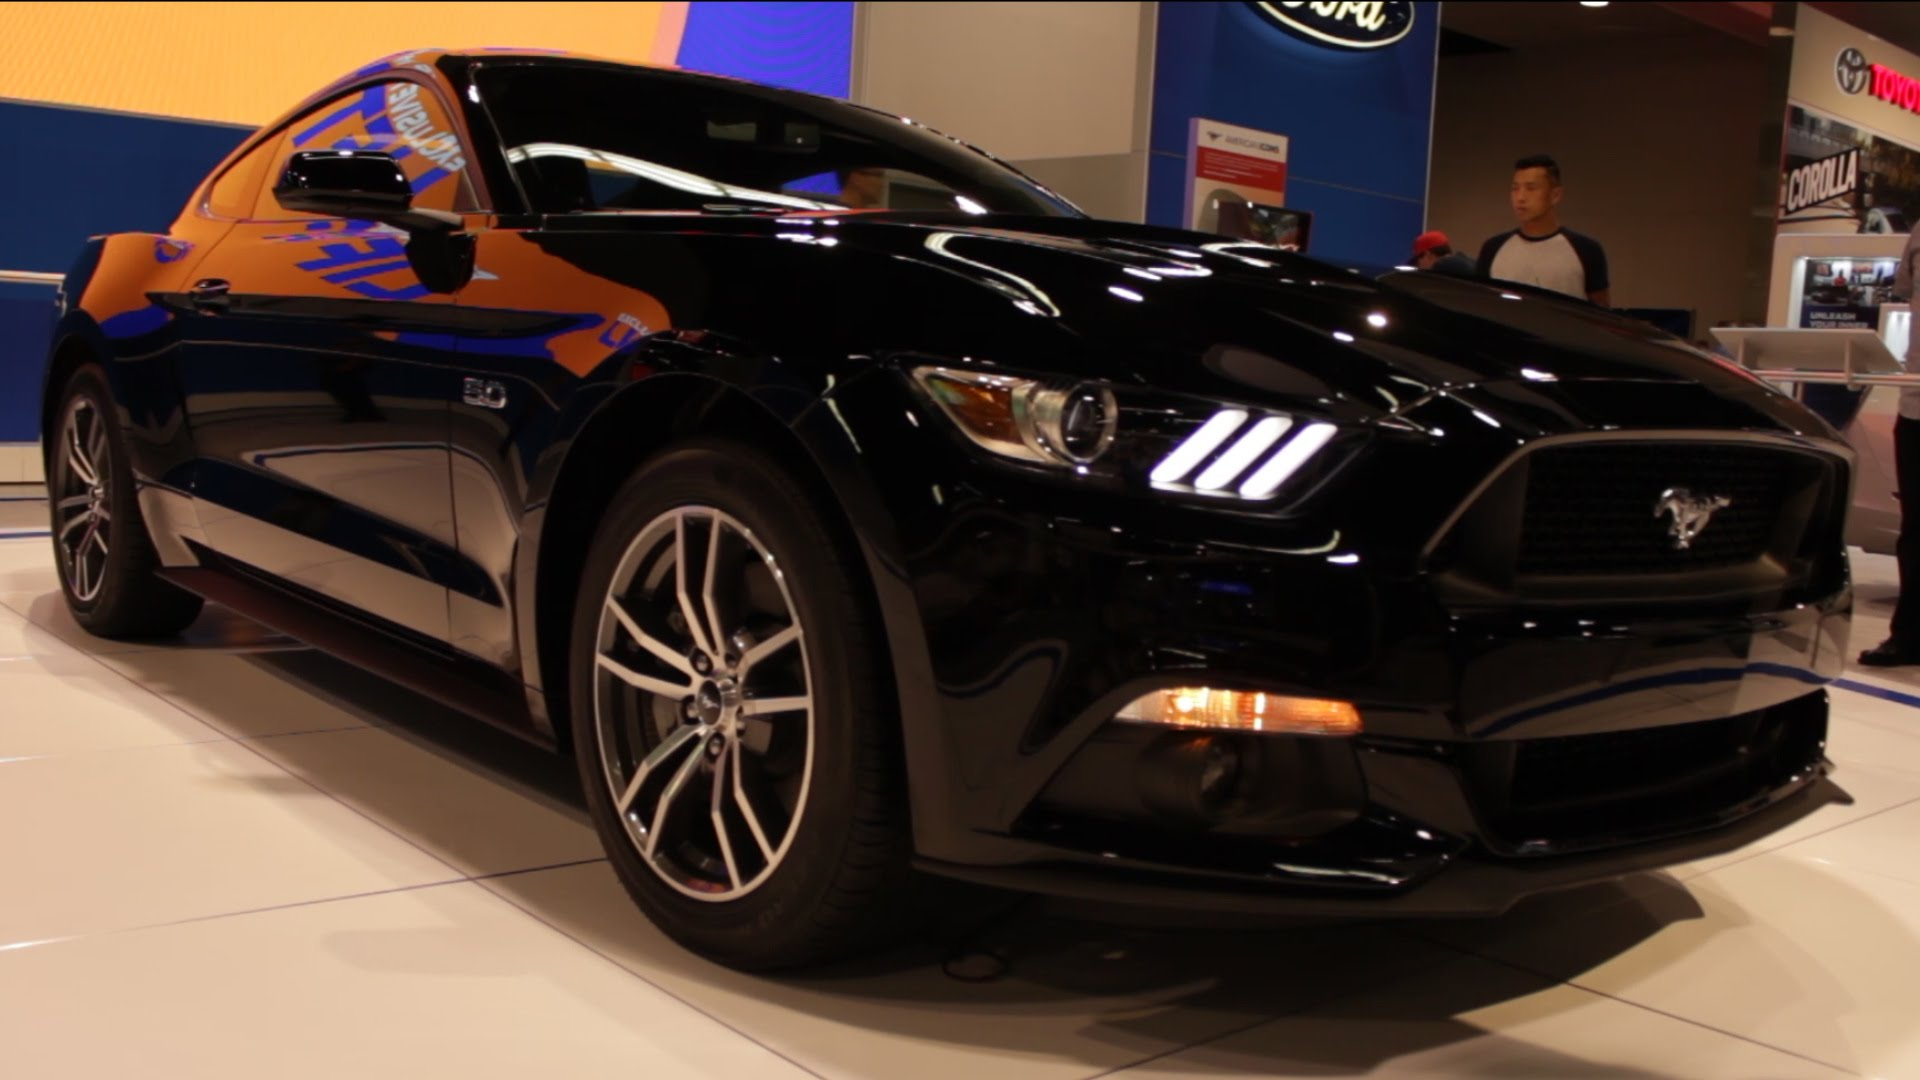 2015 Ford Mustang GT Black   OC Auto Show 2014 1920x1080